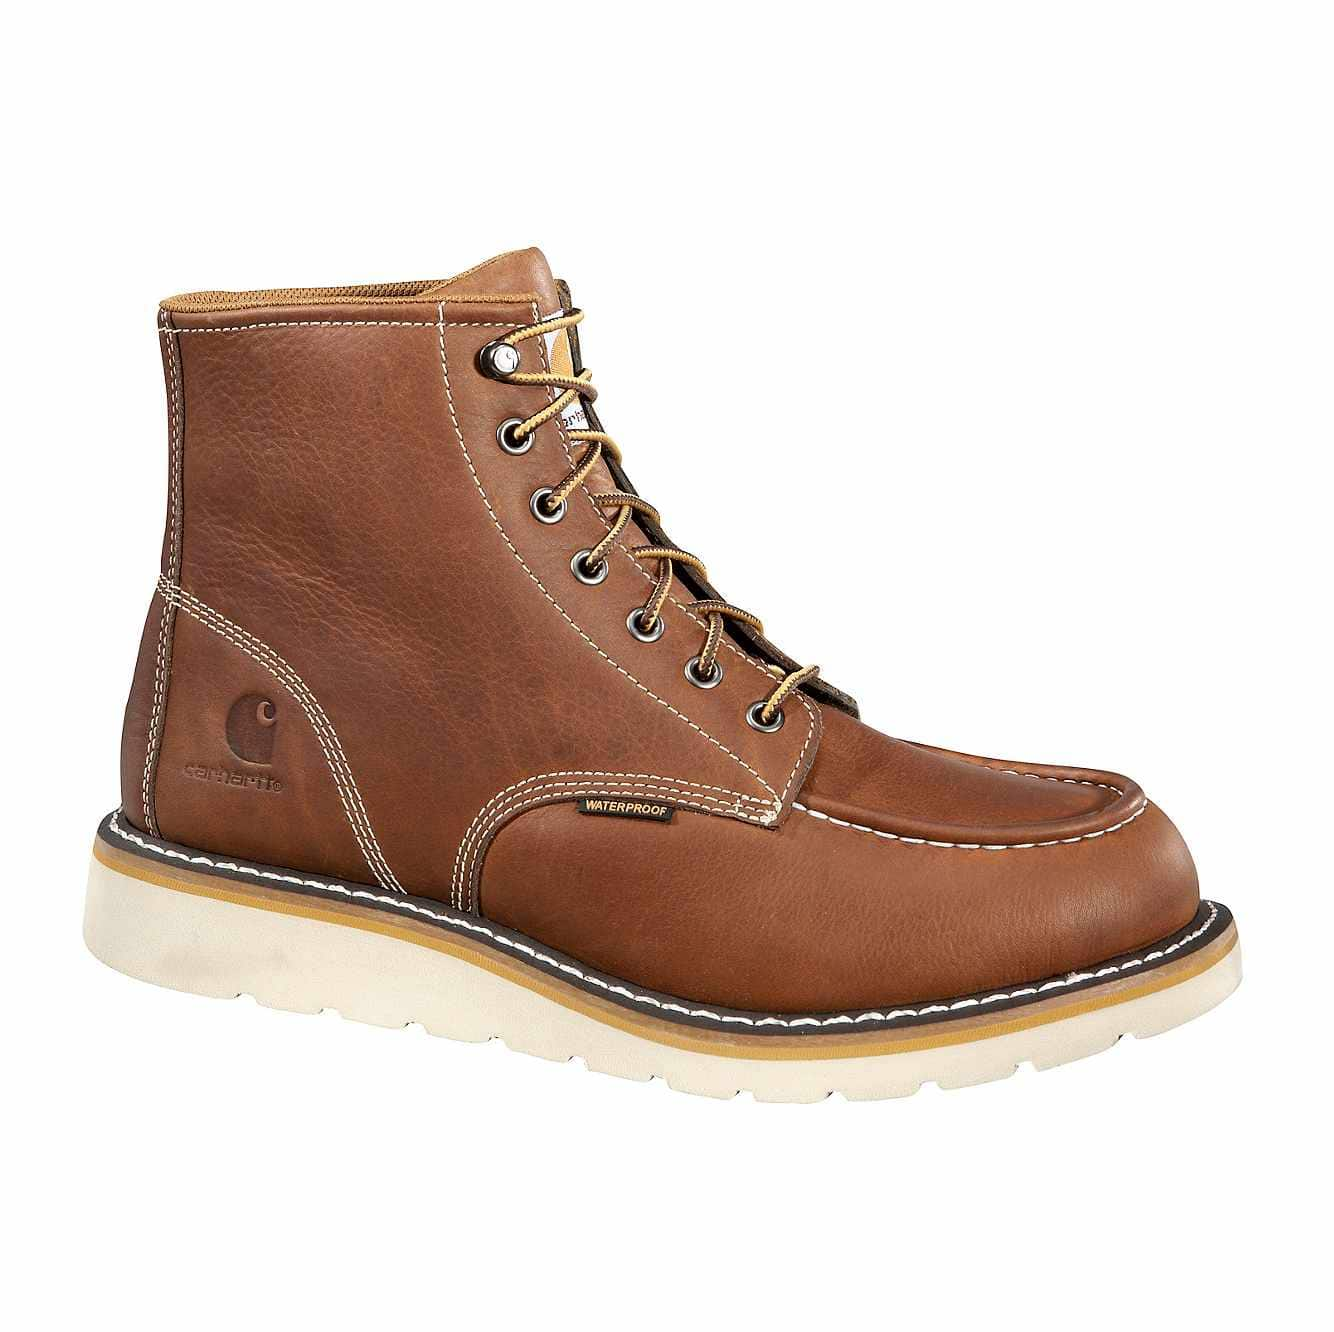 "Carhartt 6"" Steel Toe Tan Wedge Boot"